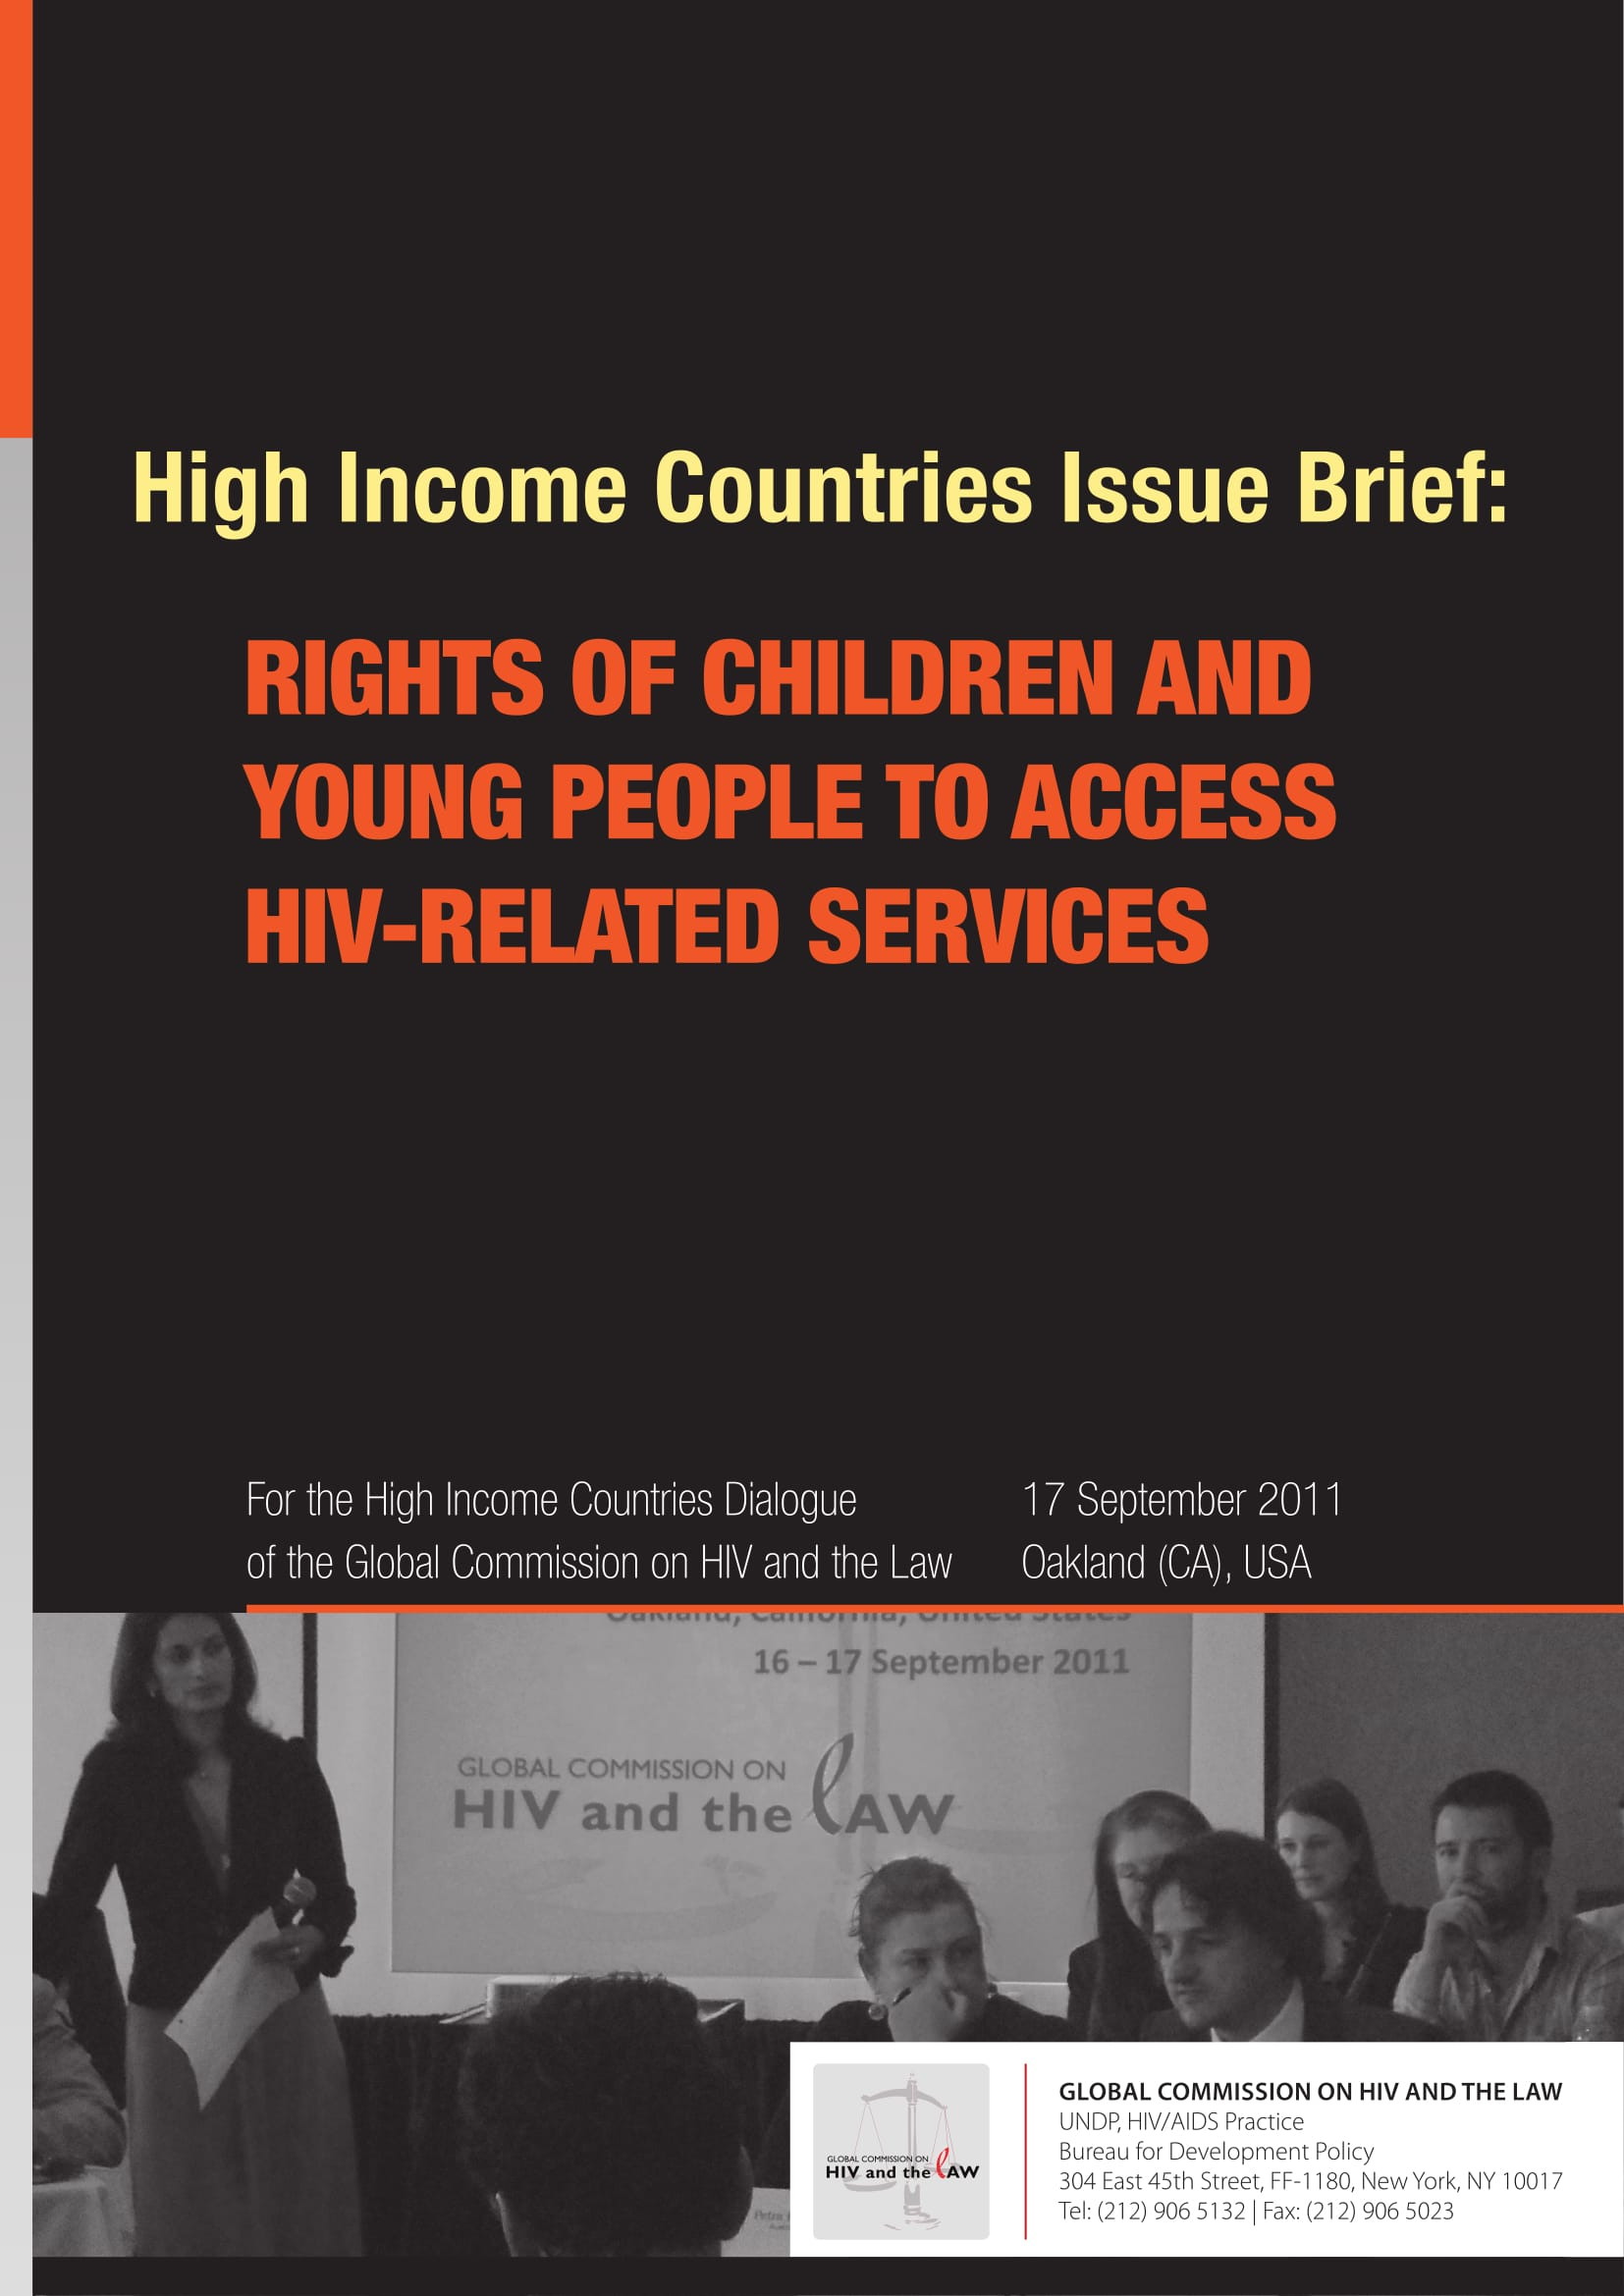 High Income Countries Issue Brief: Rights of children and young people to access HIV-related services